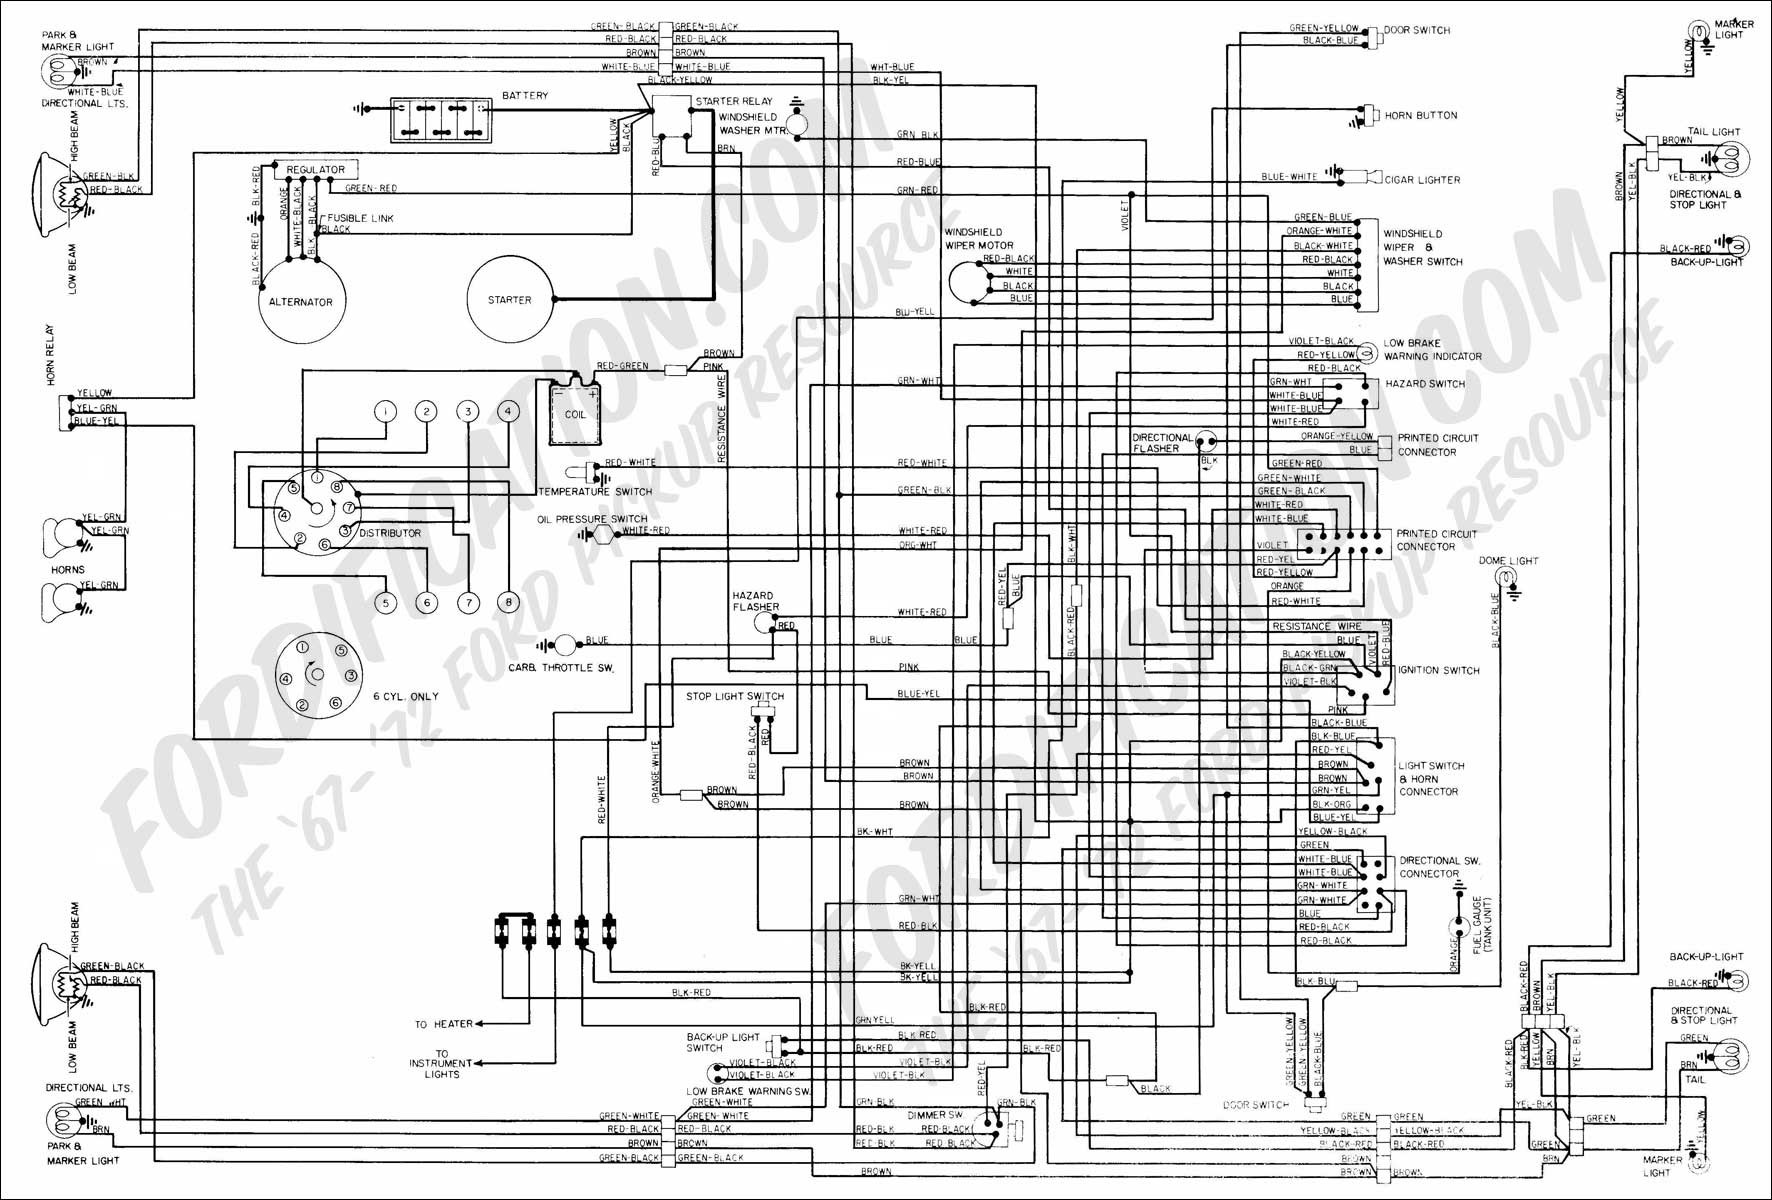 2002 ford Explorer Engine Diagram 4 0 ford F350 Wiring Diagram 5 Lenito Of 2002 ford Explorer Engine Diagram 4 0